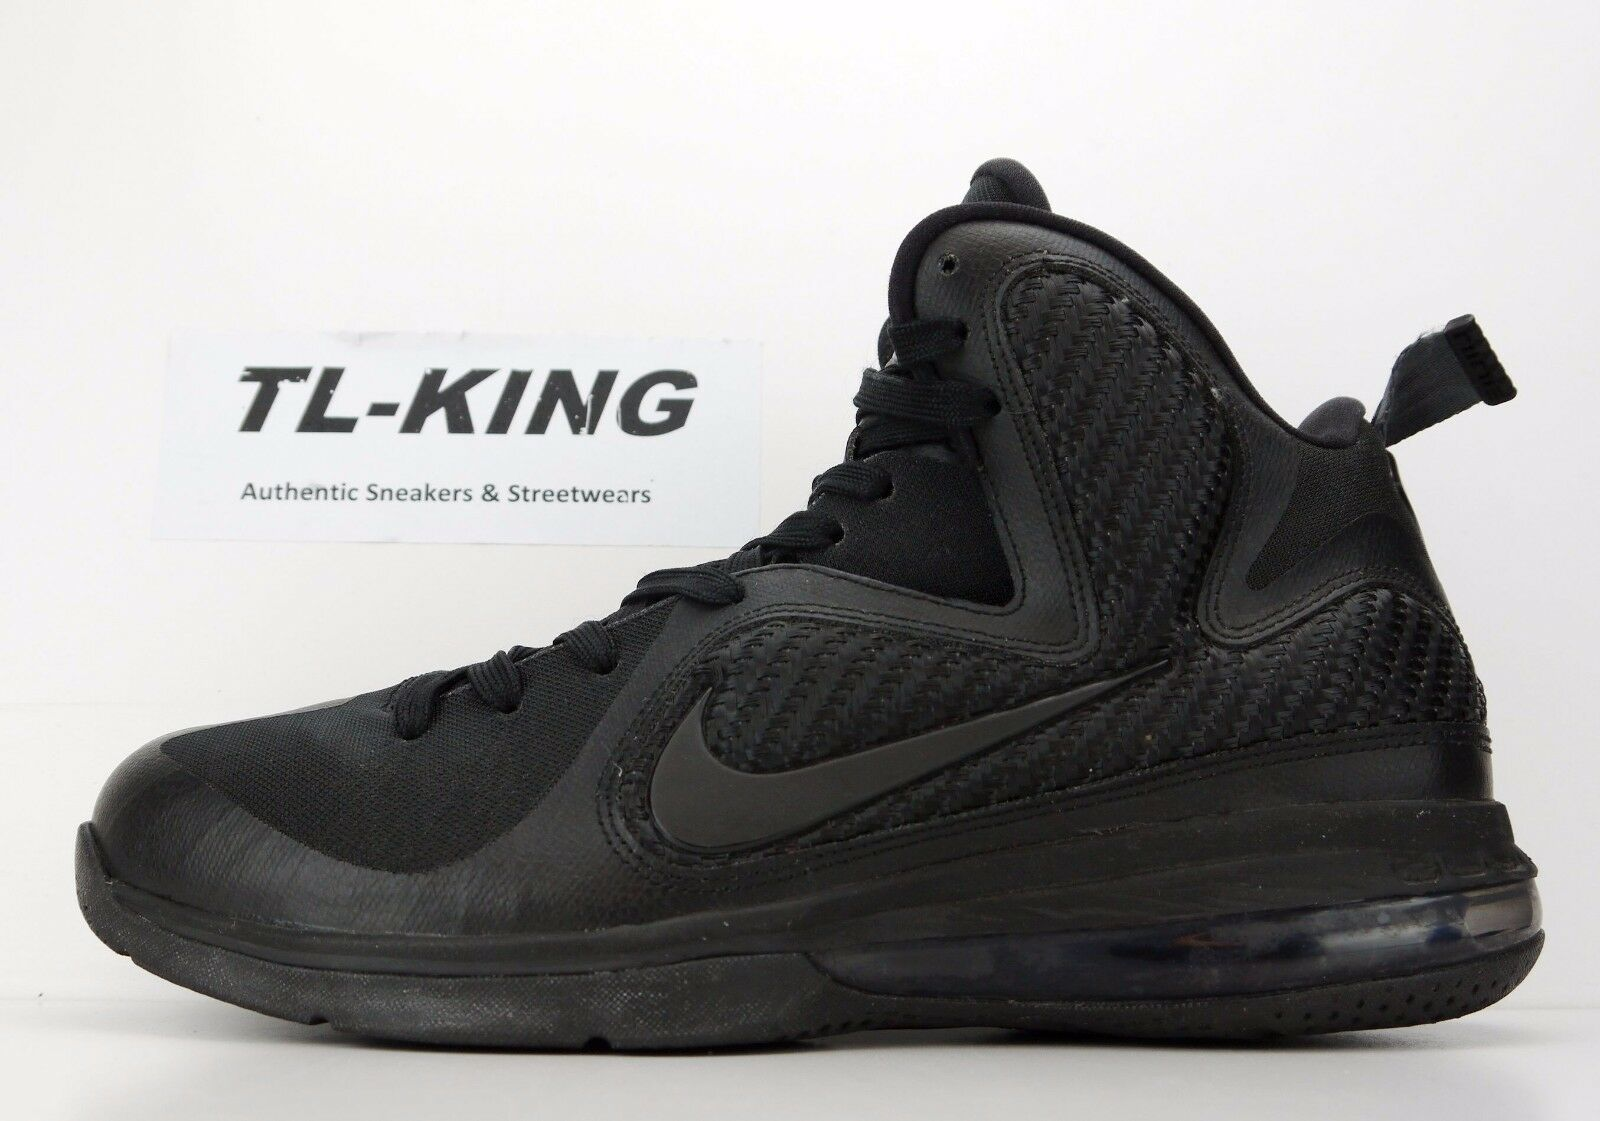 2011 Anthracite Nike LeBron 9 Blackout Anthracite 2011 469764-001 size 9.5 USED 314b6f